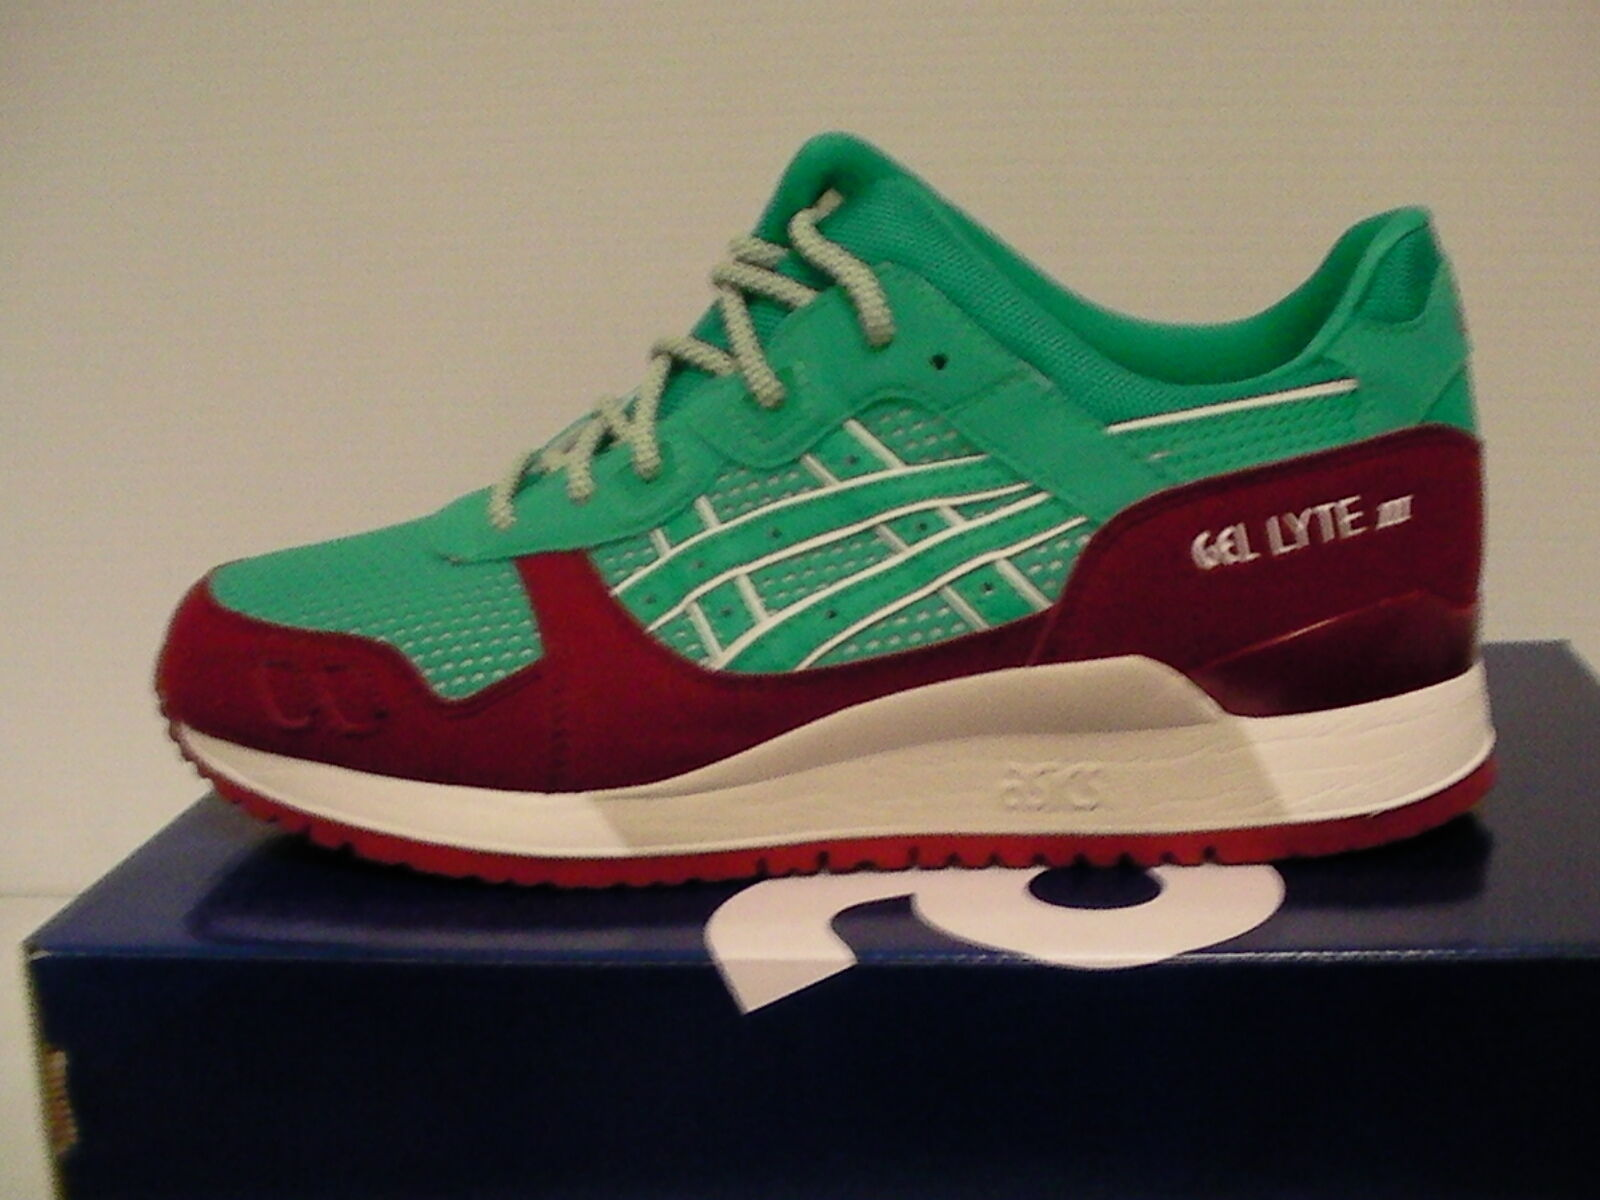 Primary image for Asics running shoes gel-lyte iii size 10.5 us men spectra green new with box